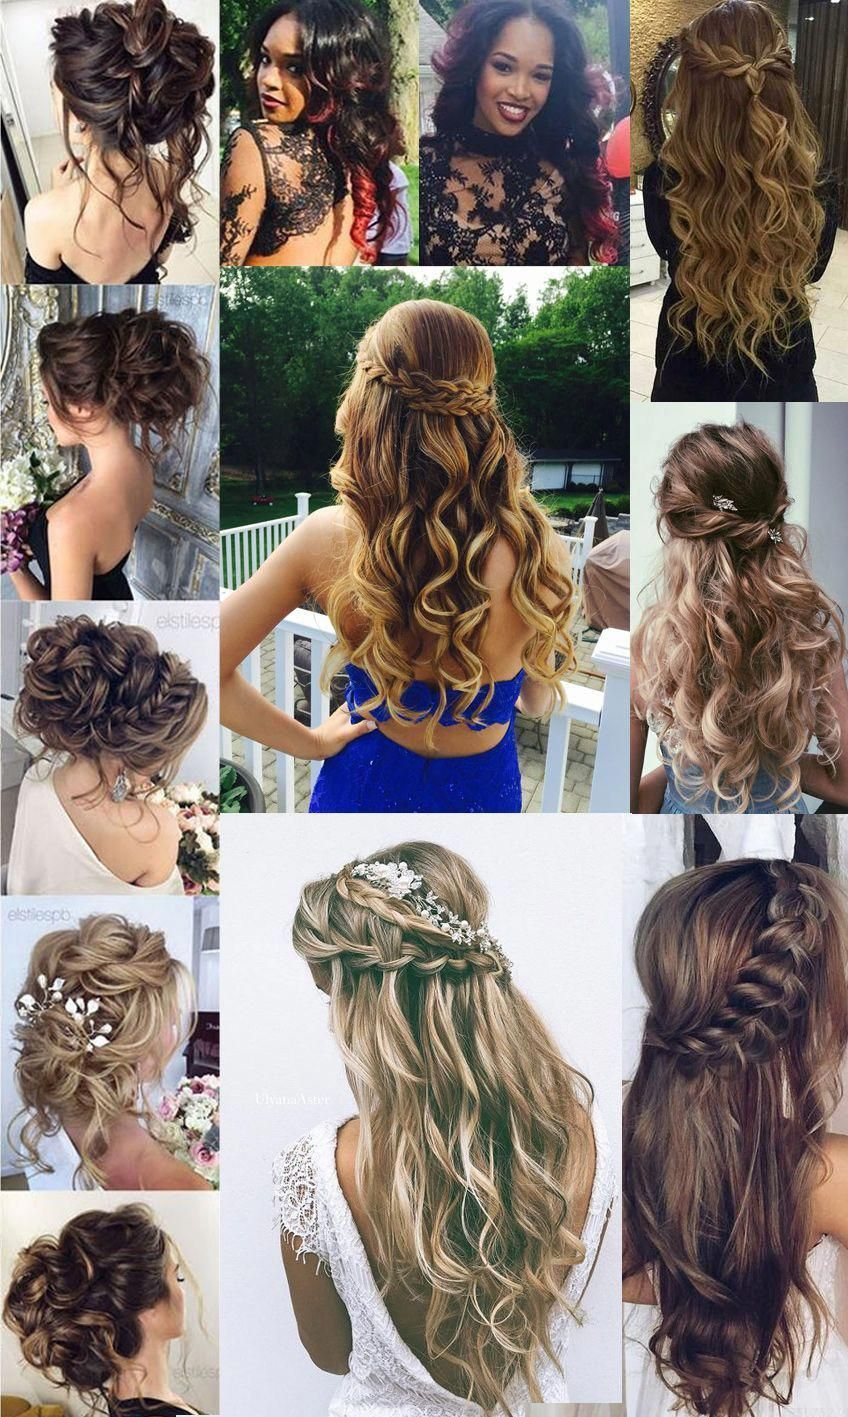 easy prom hairstyles #easypromhairstyles | Party hairstyles for long hair, Hairstyles for long ...